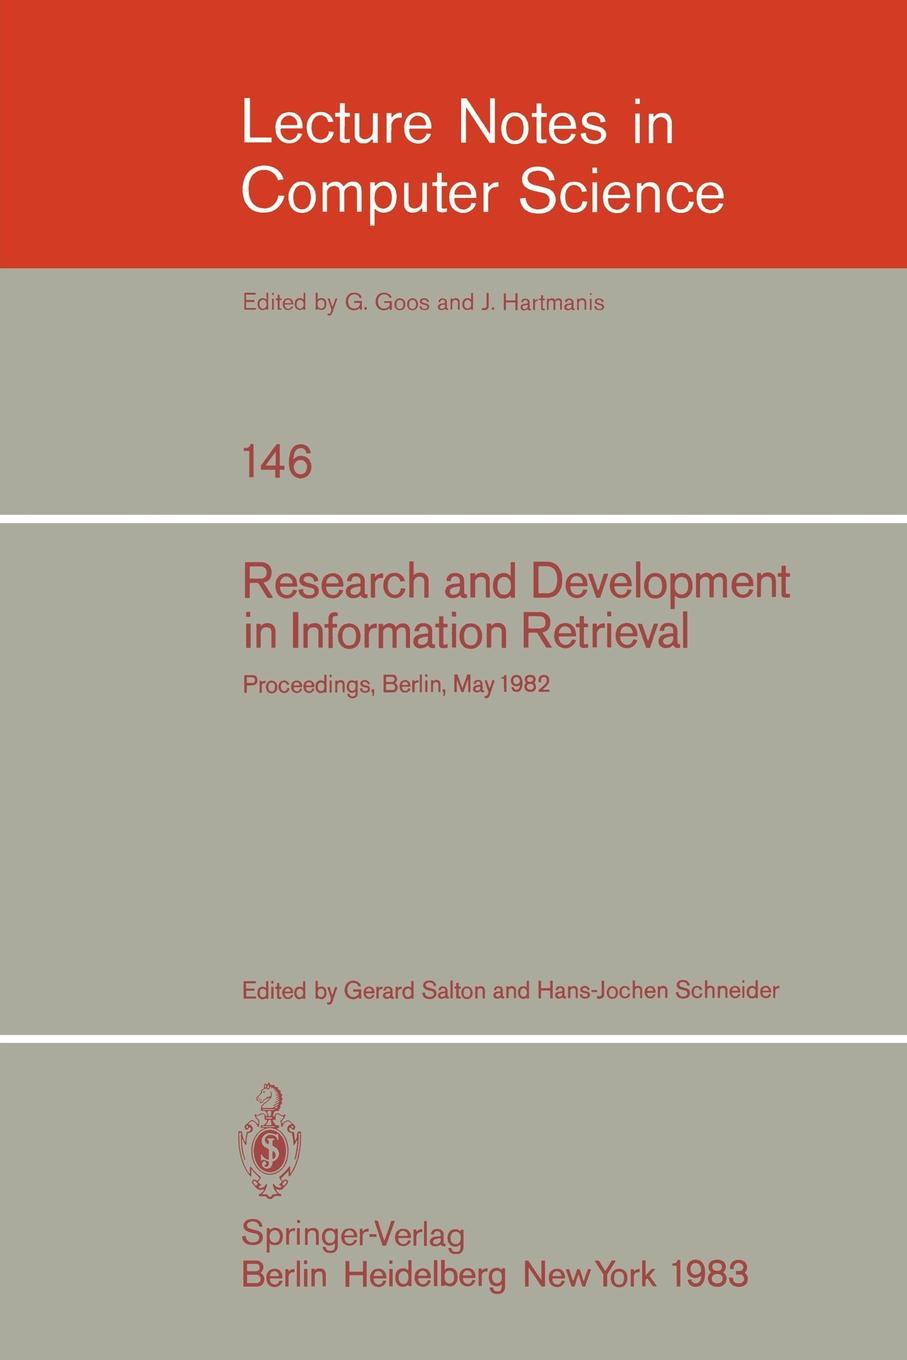 Research and Development in Information Retrieval. Proceedings, Berlin, May 18-20, 1982 christian sallaberry geographical information retrieval in textual corpora